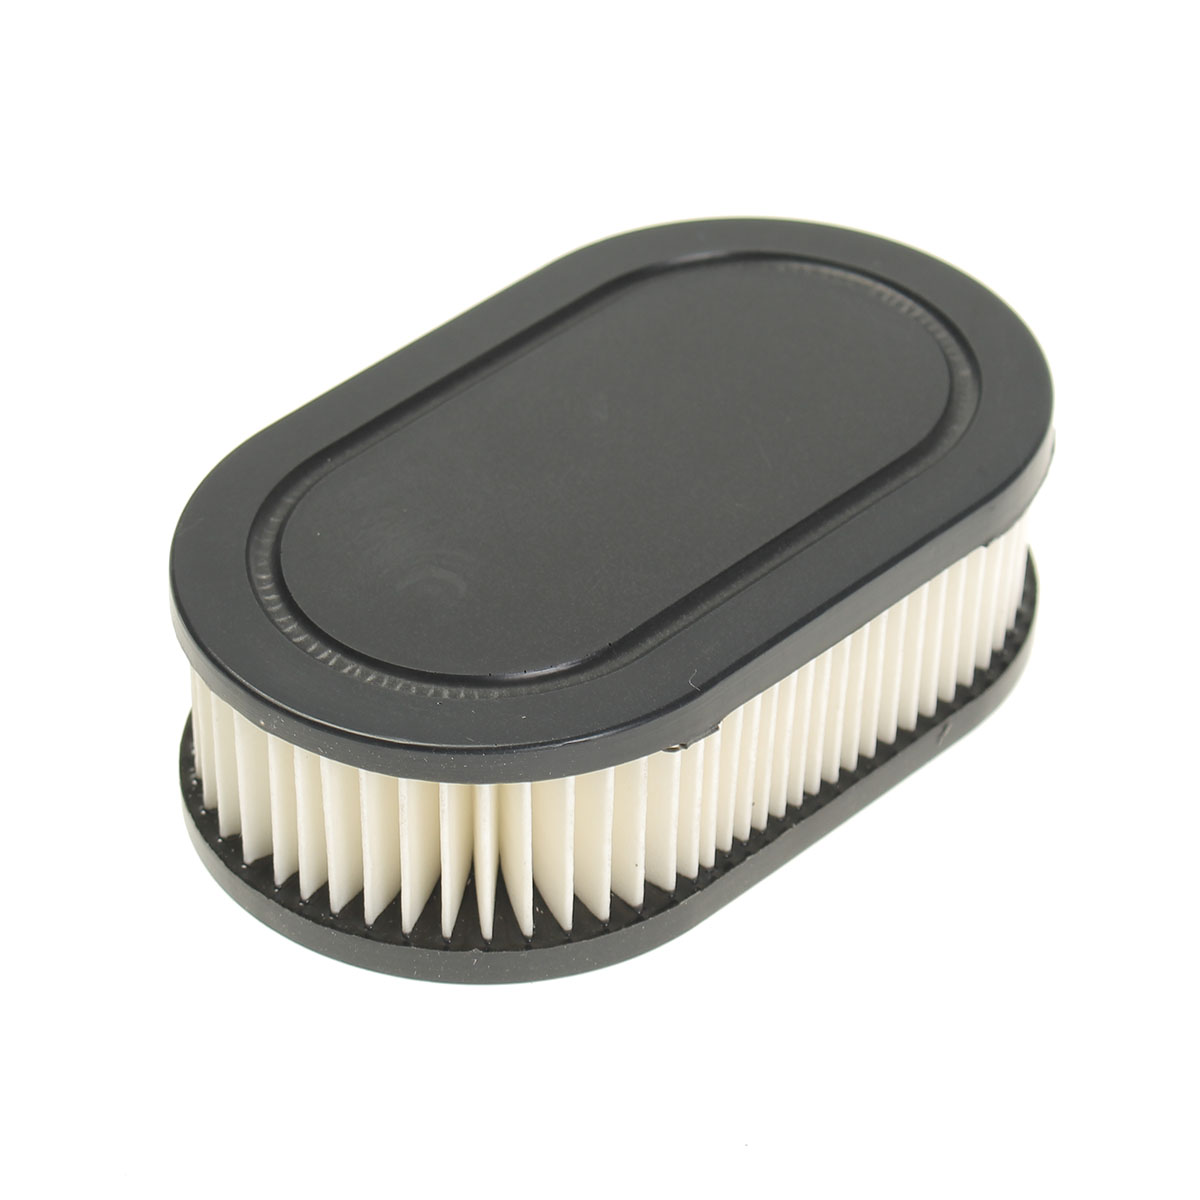 Lawn Mower Air Filter : Lawn mower air filter for briggs stratton